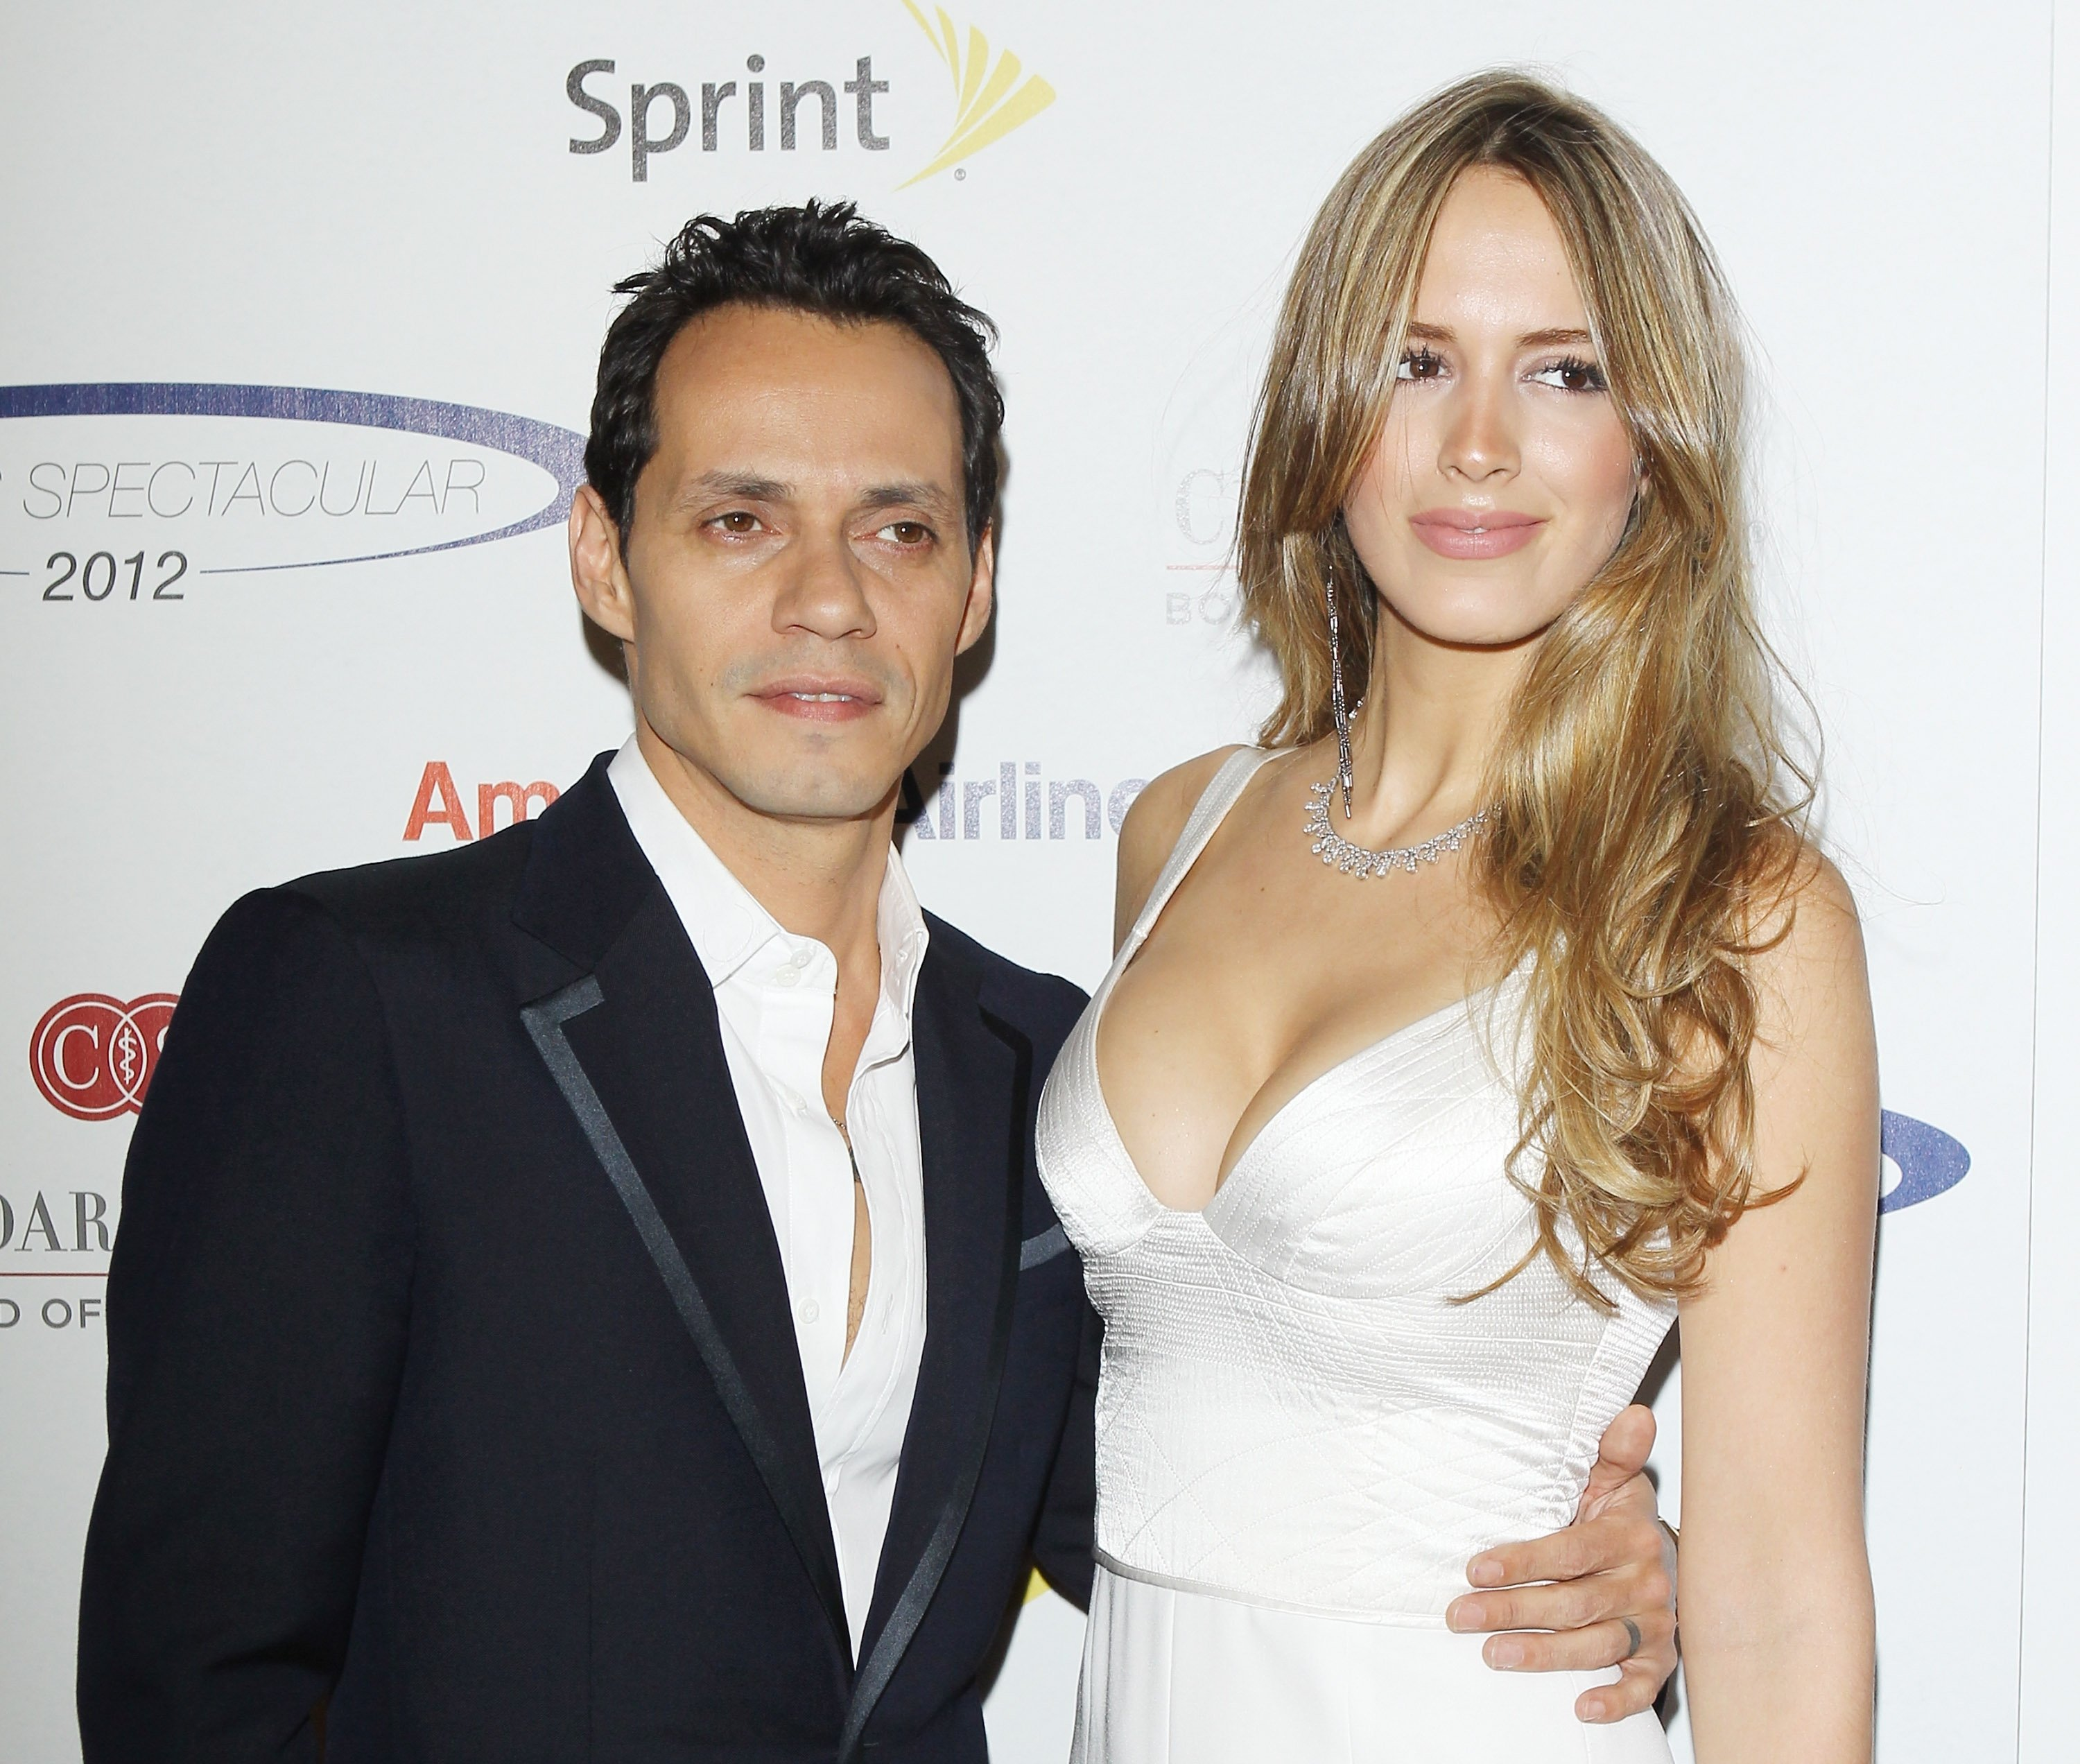 Marc Anthony and Shannon De Lima arrive at 27th Anniversary of Sports Spectacular held at the Hyatt Regency Century Plaza on May 20, 2012 in Century City, Calif.